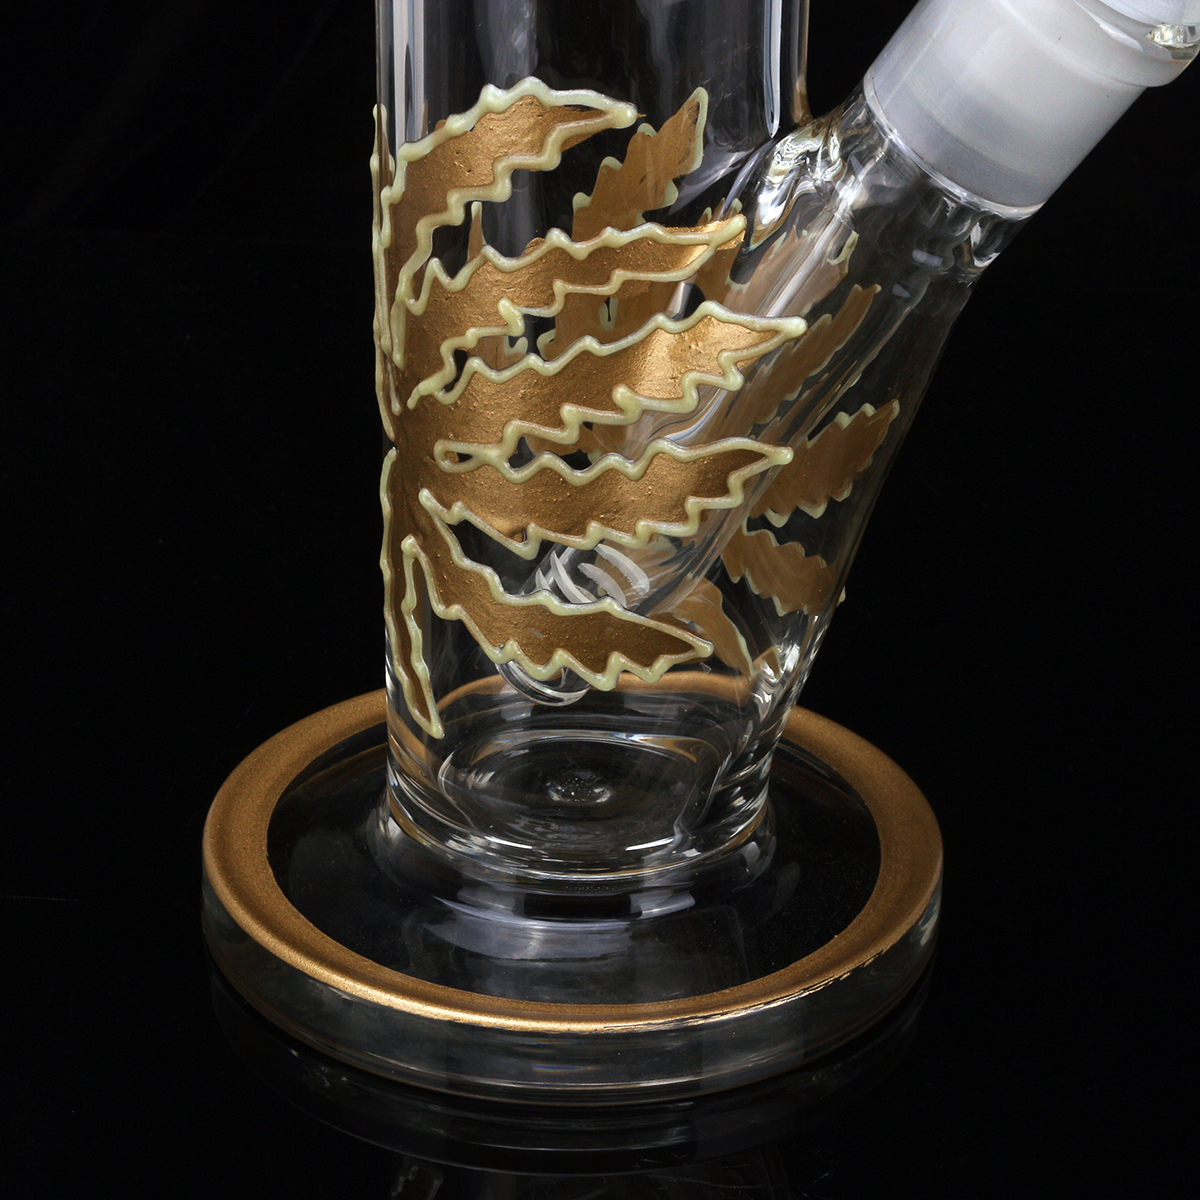 18 Inch Luminous Glass Joint Pipes Bubblers for Smoking Recycler Glass